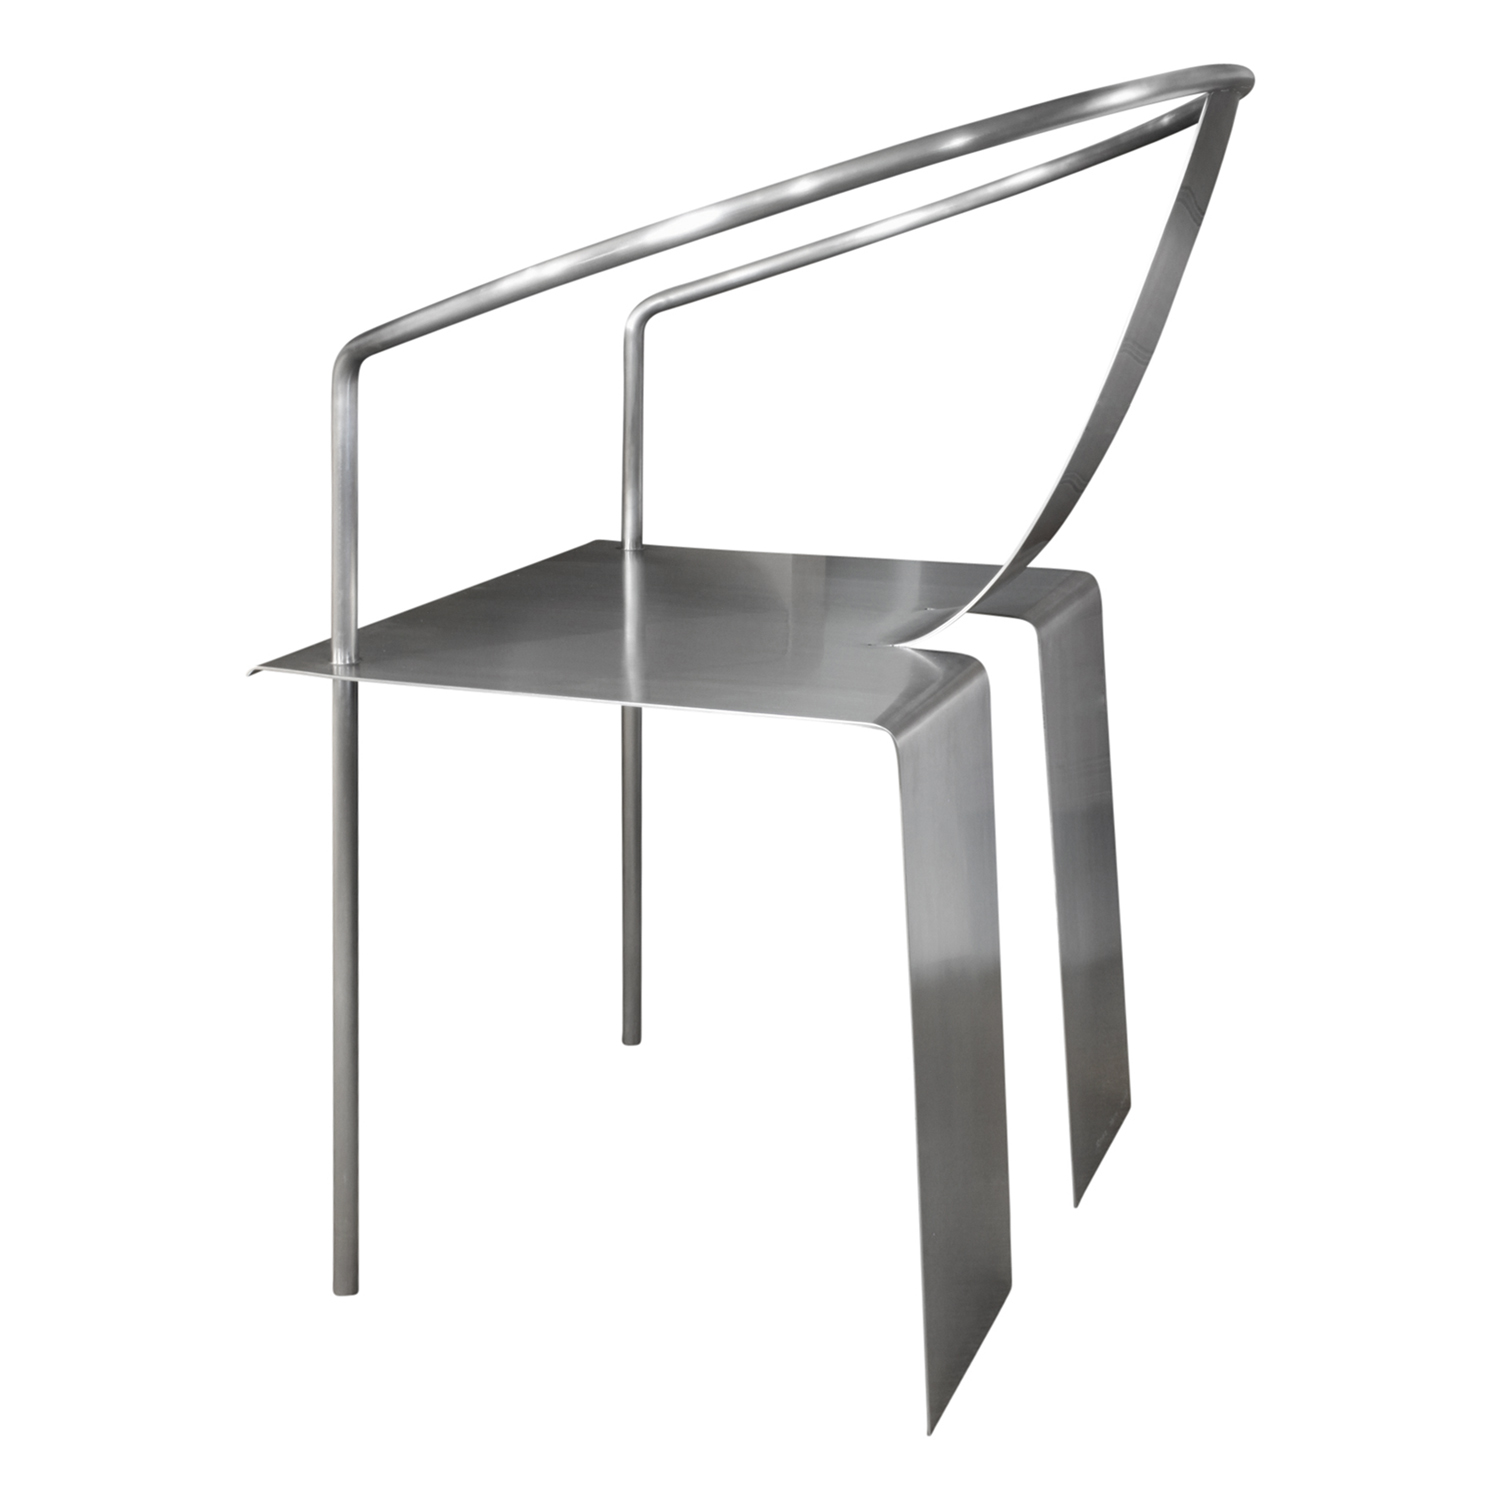 Shao Fan 300 steel chair sculpture109 bak agl.jpg